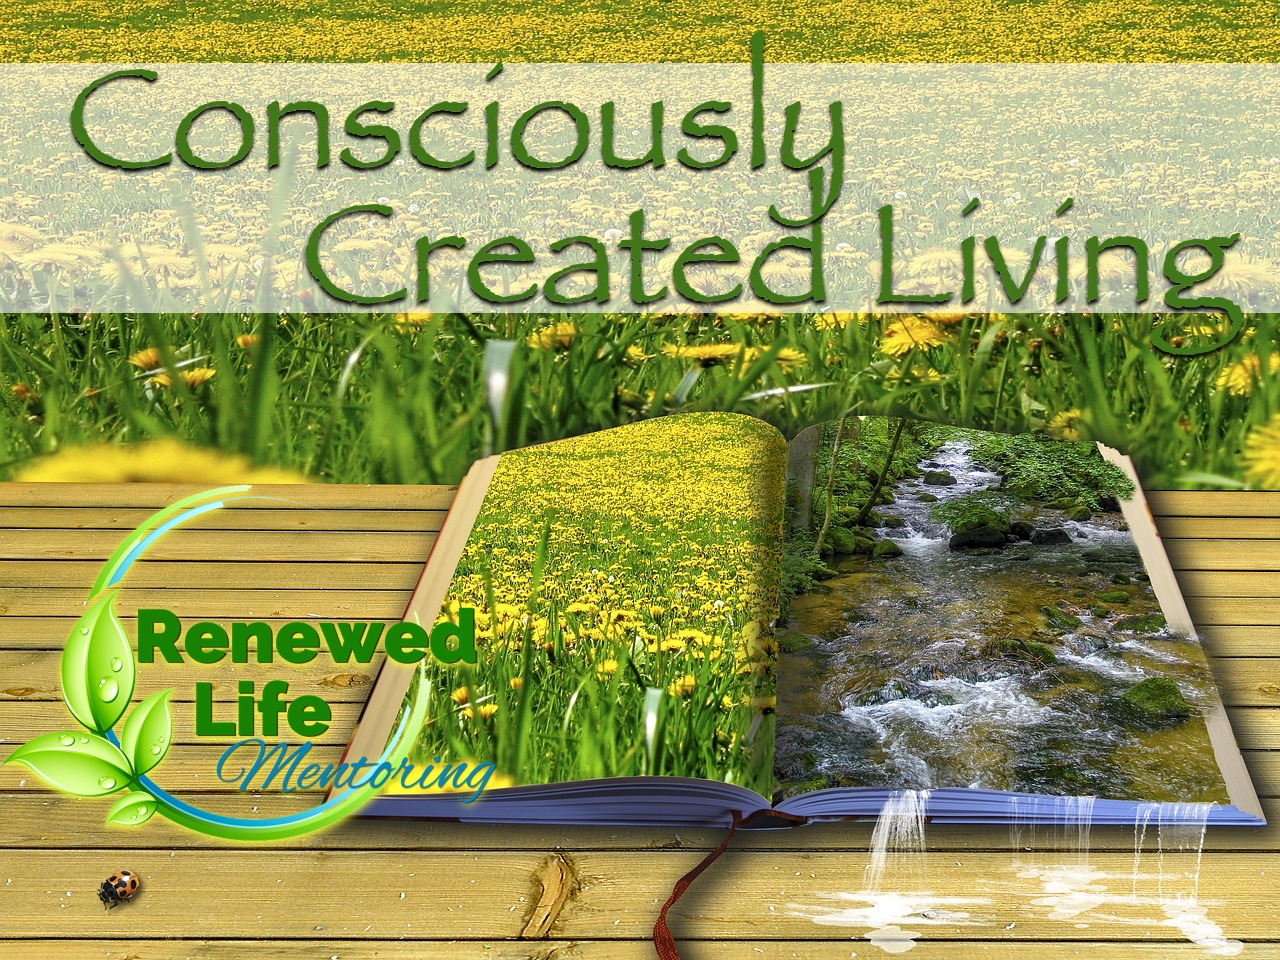 Consciously Created Living - Being intentional to fashion a life that brings honor and glory to God.Remembering who I am in Christ and the riches of God's love lavished on me.